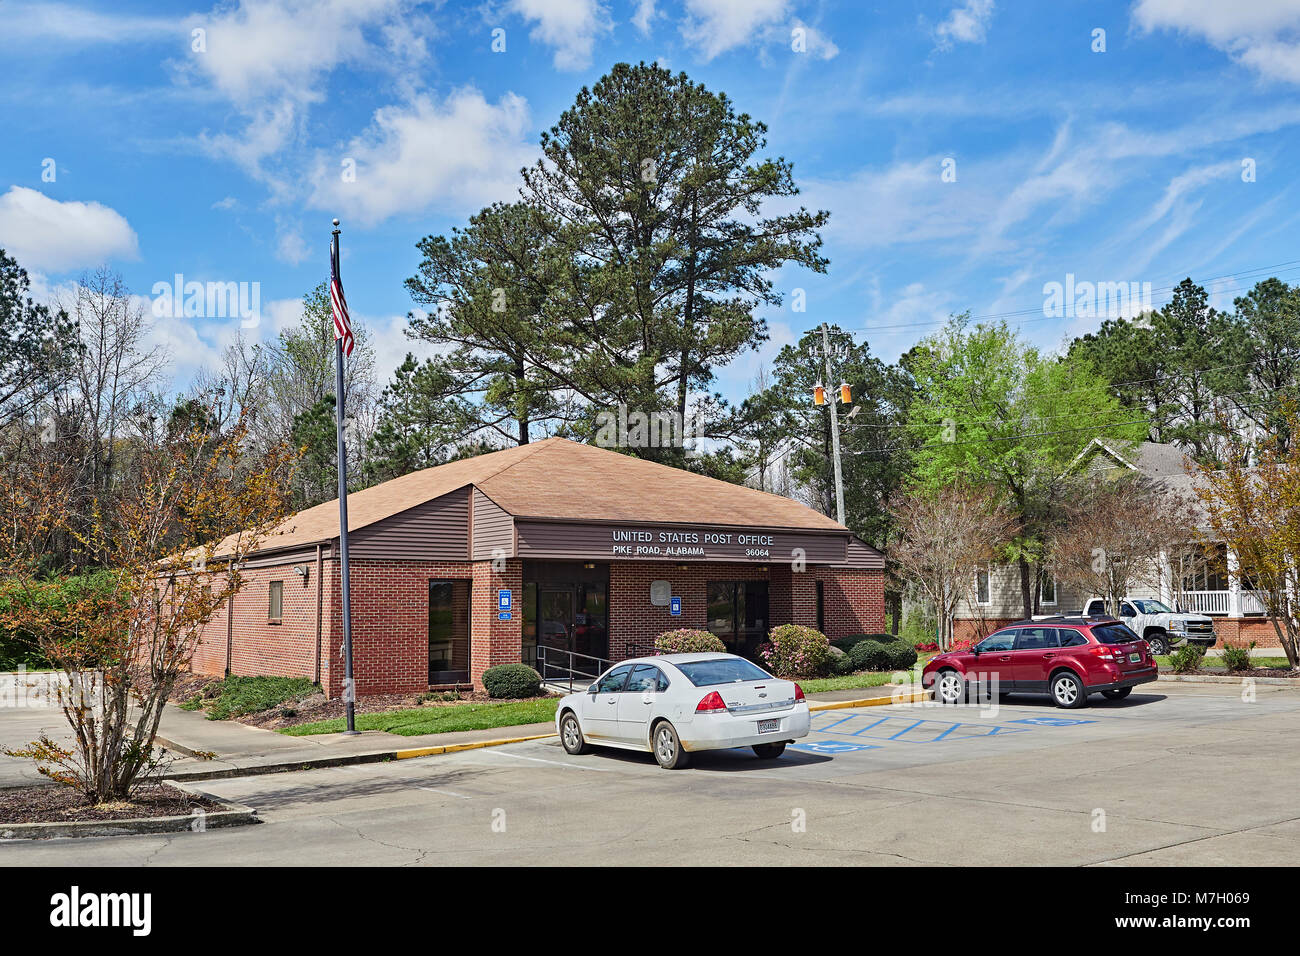 Exterior front entrance to the rural small town Post Office in Pike Road, Alabama, USA. - Stock Image